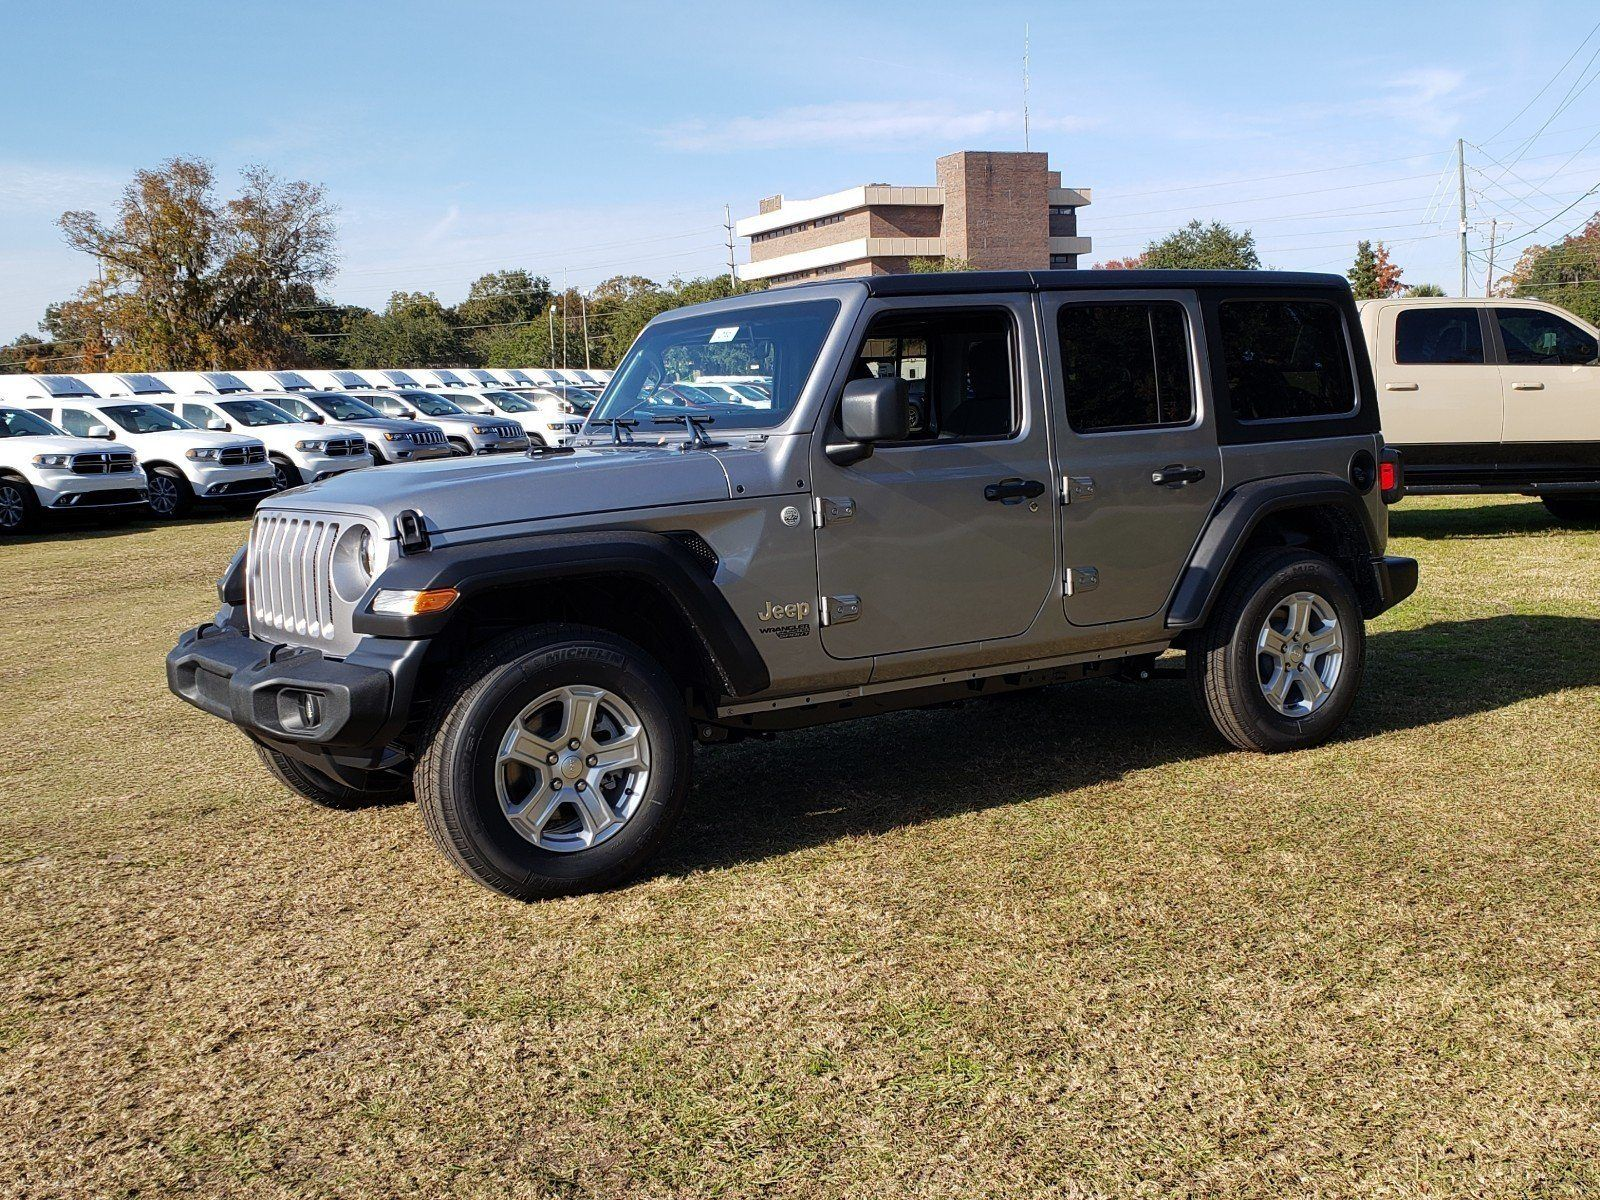 2020 Jeep Wrangler Price And Review In 2020 With Images Jeep Wrangler Price Jeep Wrangler Wrangler